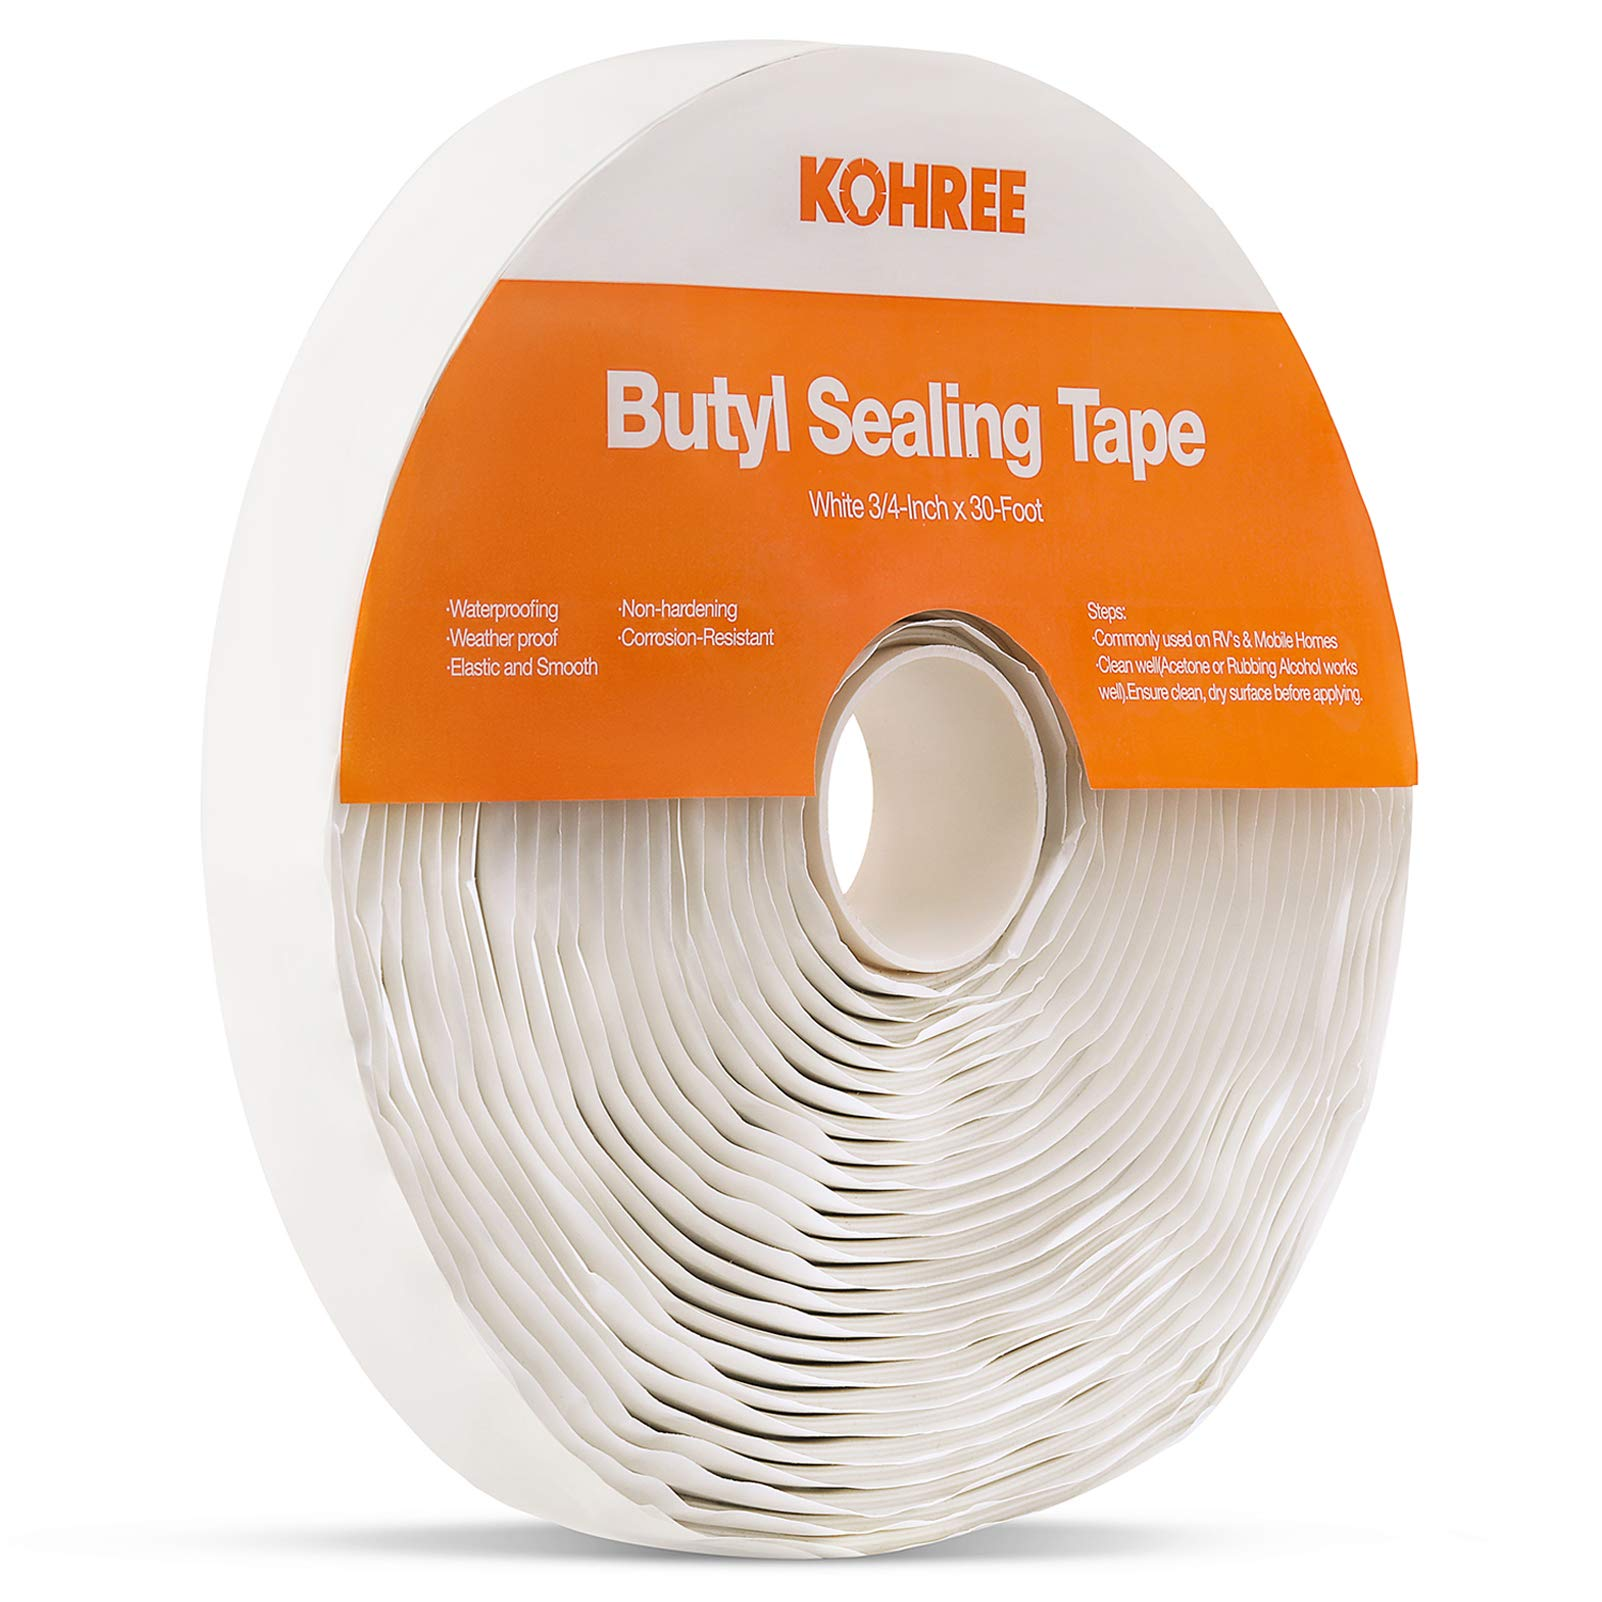 Kohree Butyl Seal Tape RV Putty Rubber Sealant Tape White, 1/8-Inch x 3/4-Inch x 30-Foot, Leak Proof Butal Tape for RV Repair, Window, Boat Sealing, Glass and EDPM Rubber Roof Patching